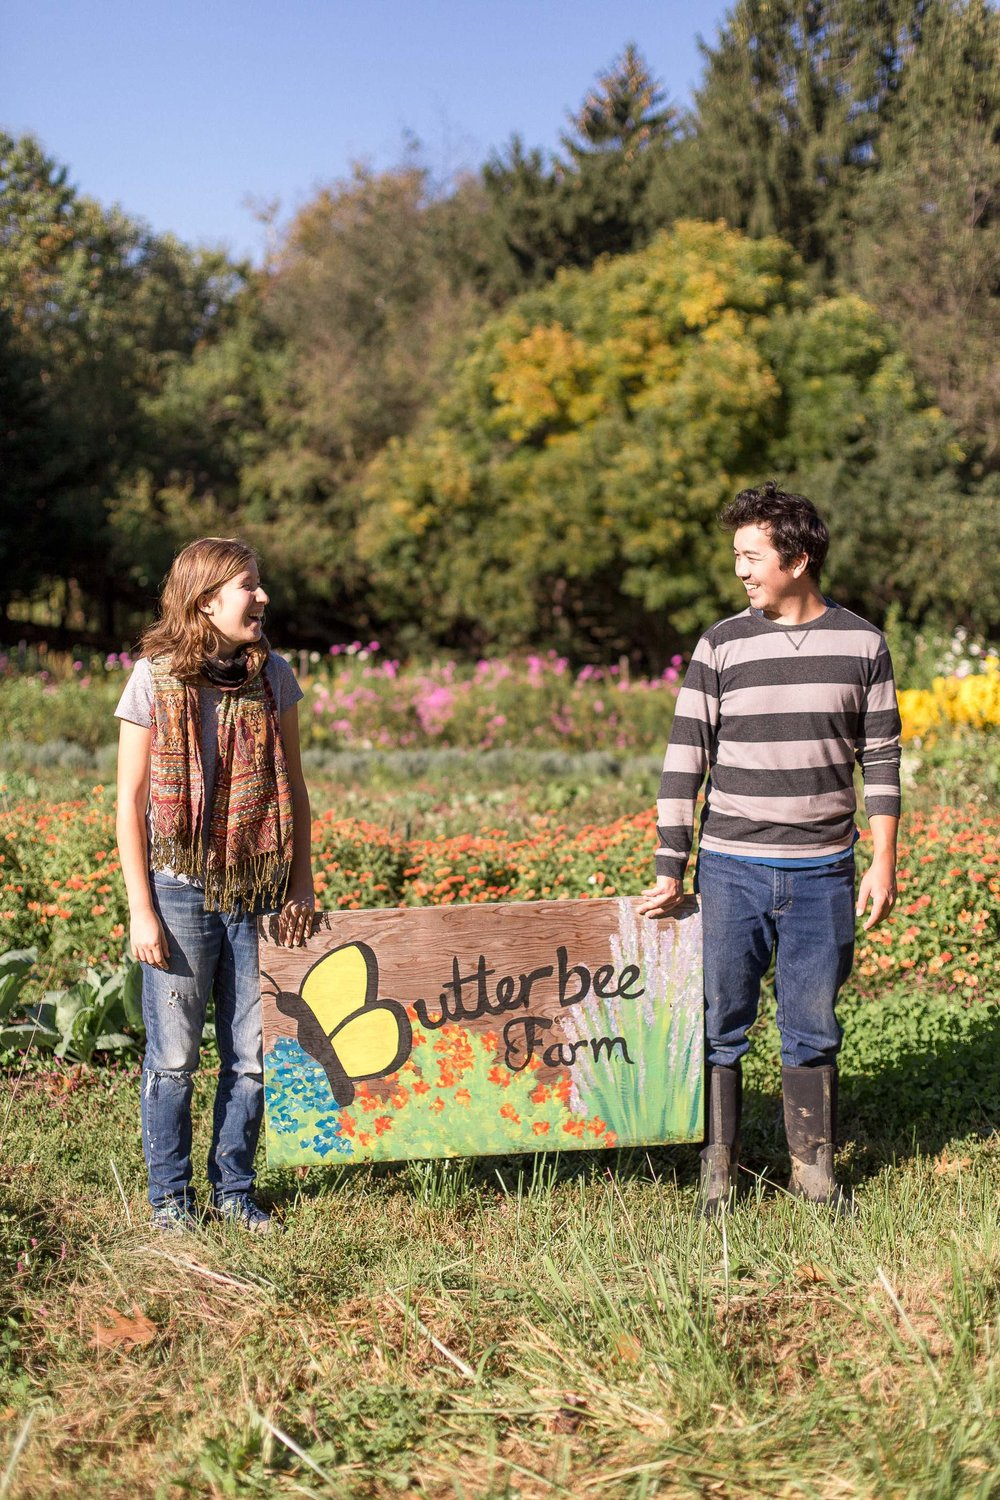 Laura Beth Resnick and Jascha Owens at Butterbee Farm. (Photo by Stacy Bauer)